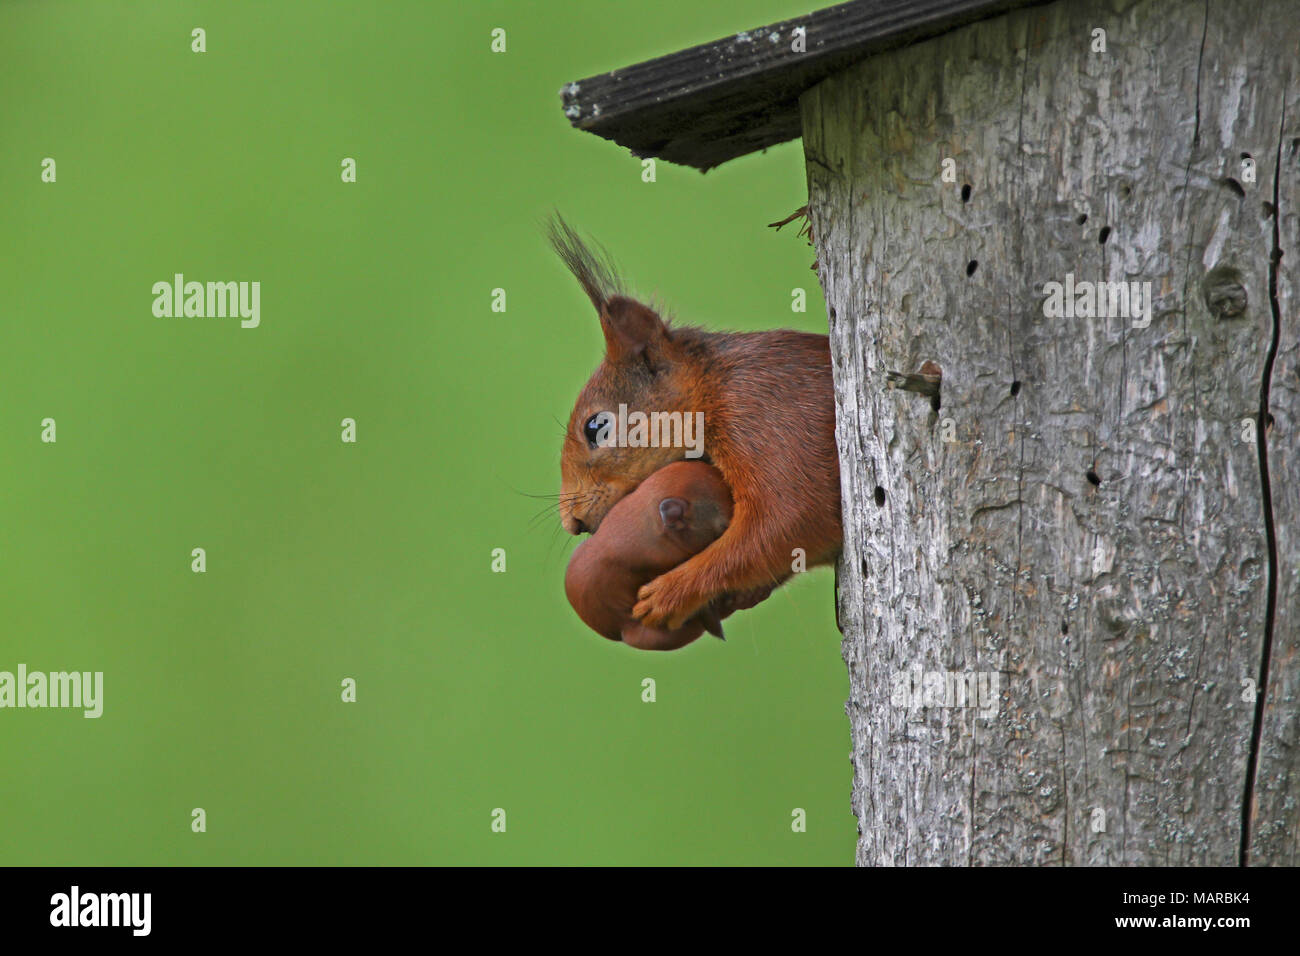 Red Squirrel (Sciurus vulgaris). Mother carrying young out from nesting box. Dalarna, Schweden - Stock Image